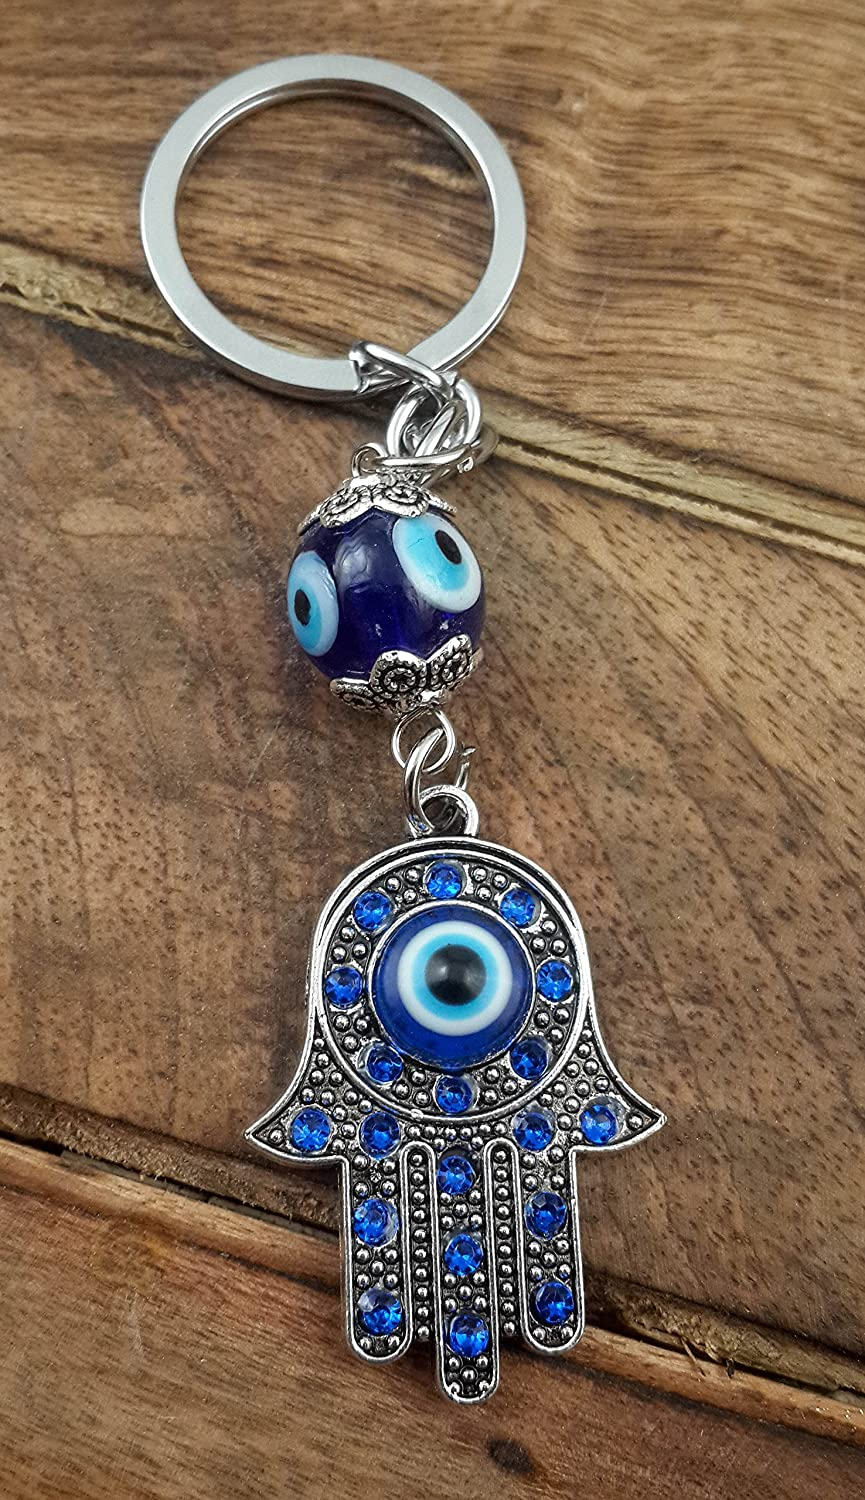 Evil Eye Silver Hamsa Keychain Hand Fatima Protection Charm Key holder Good Luck Keychain - Amulet